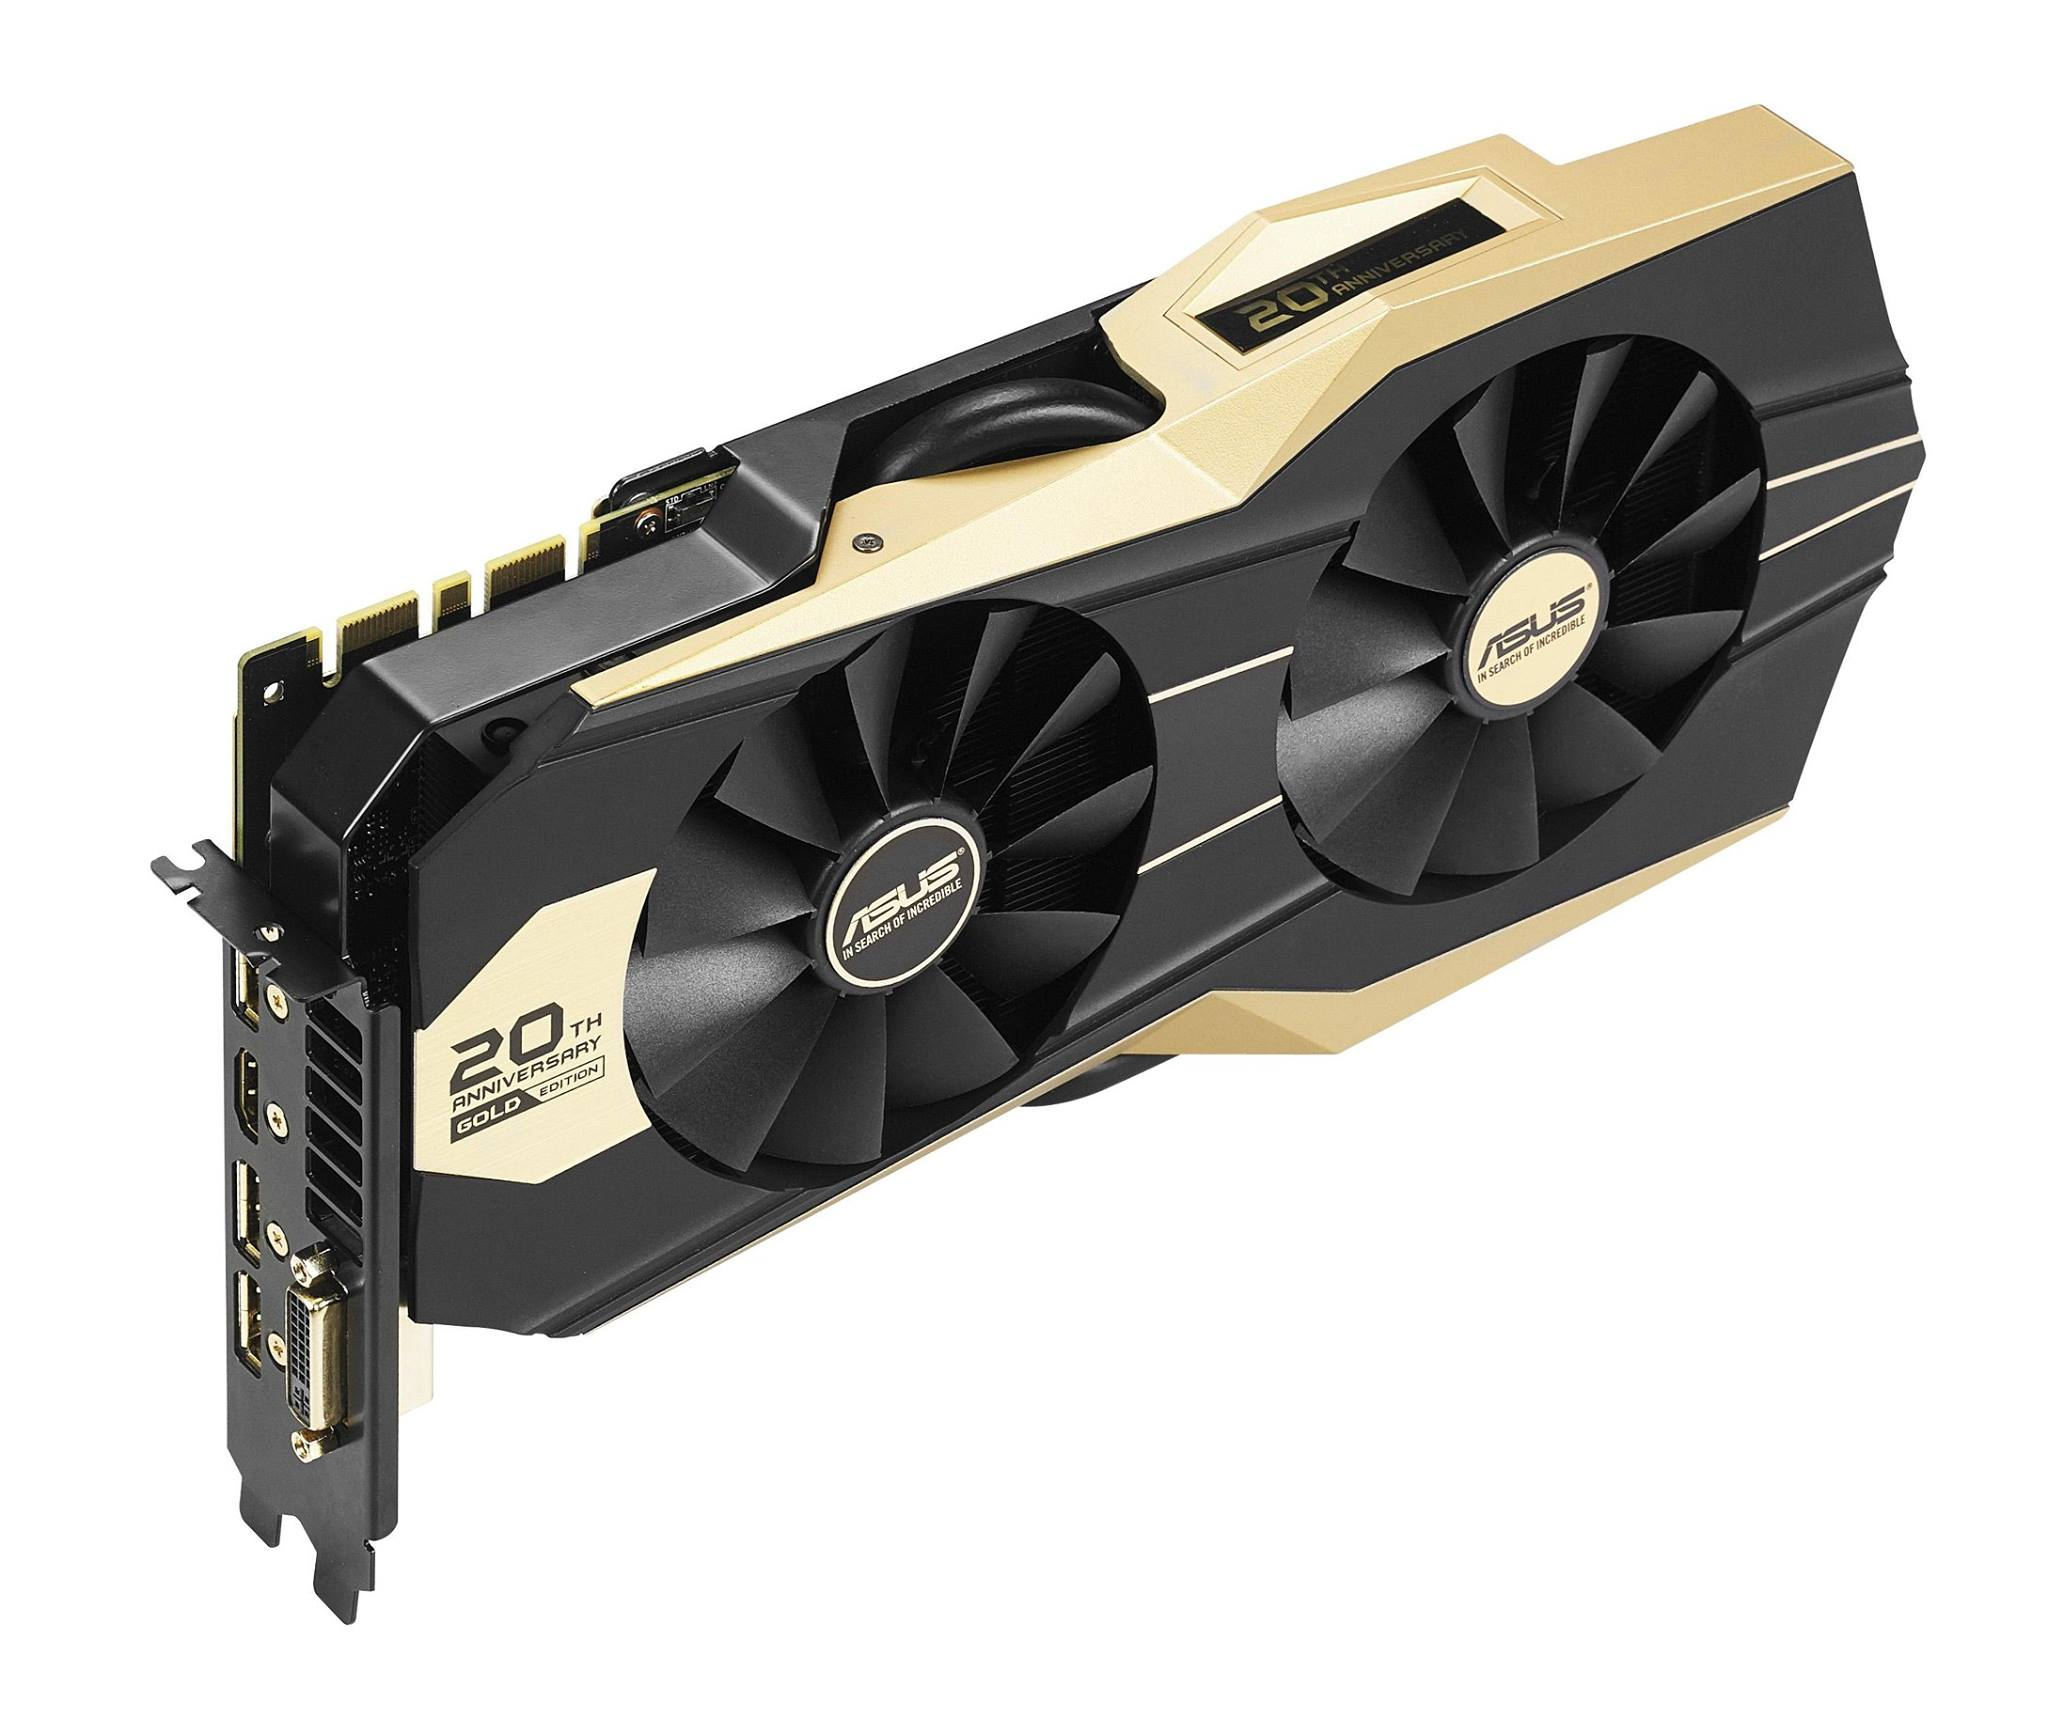 ASUS-GTX-980-GOLD-EDITION-02